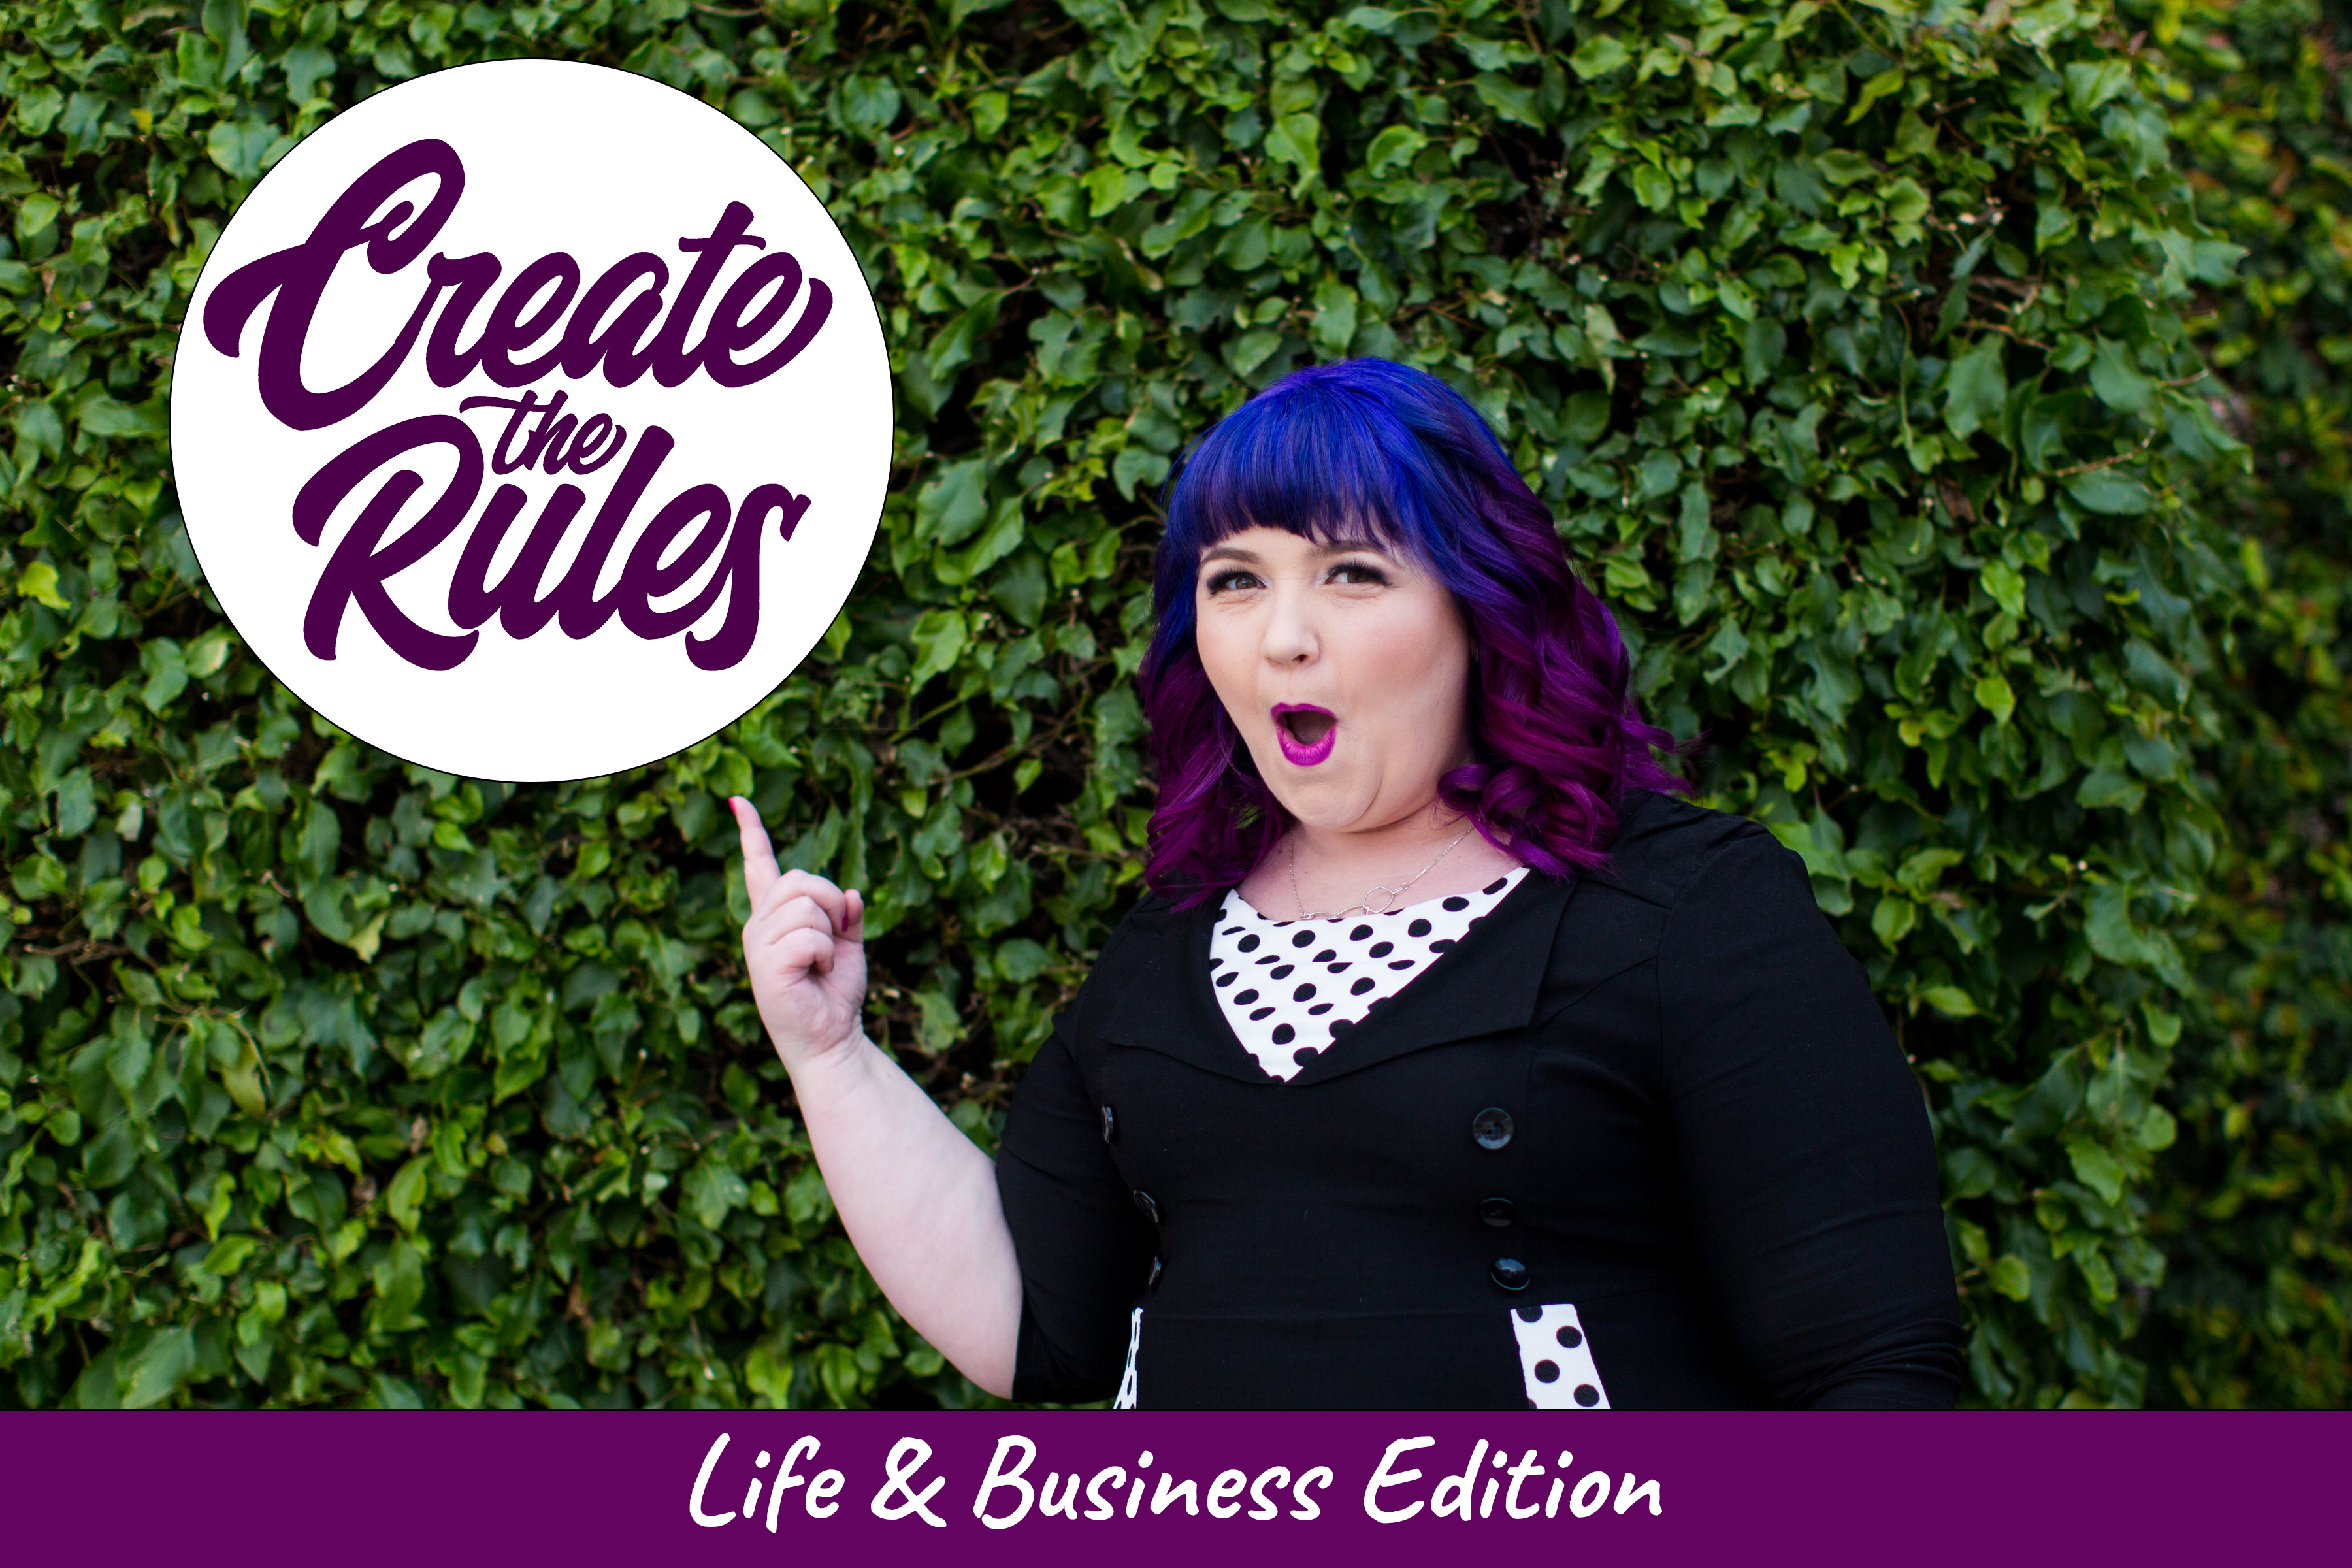 Top Three Reasons to Join Create the Rules